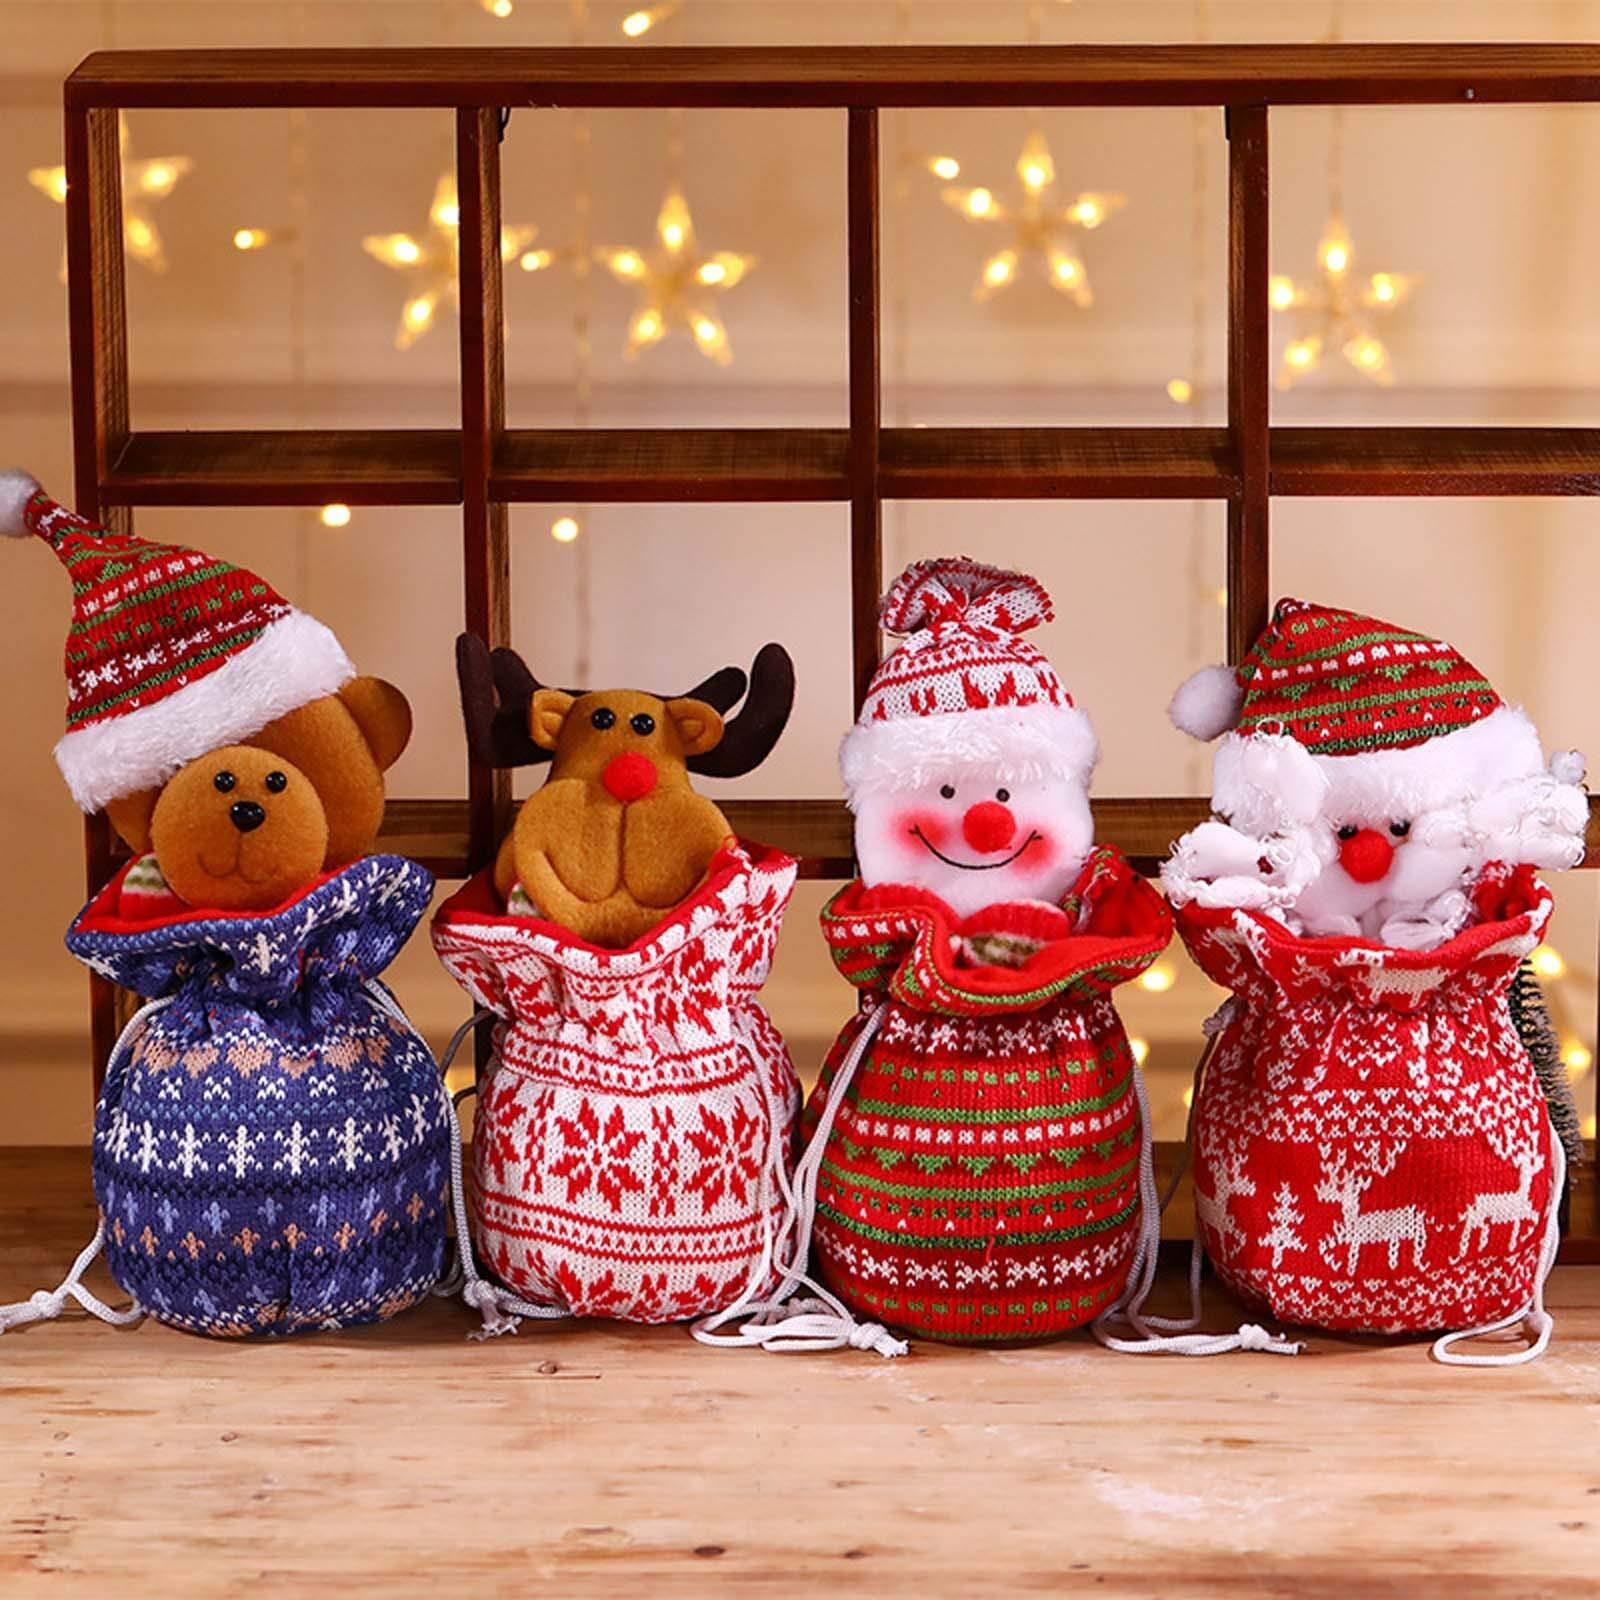 🌟Christmas Multi-Function Knitted Gift Bags